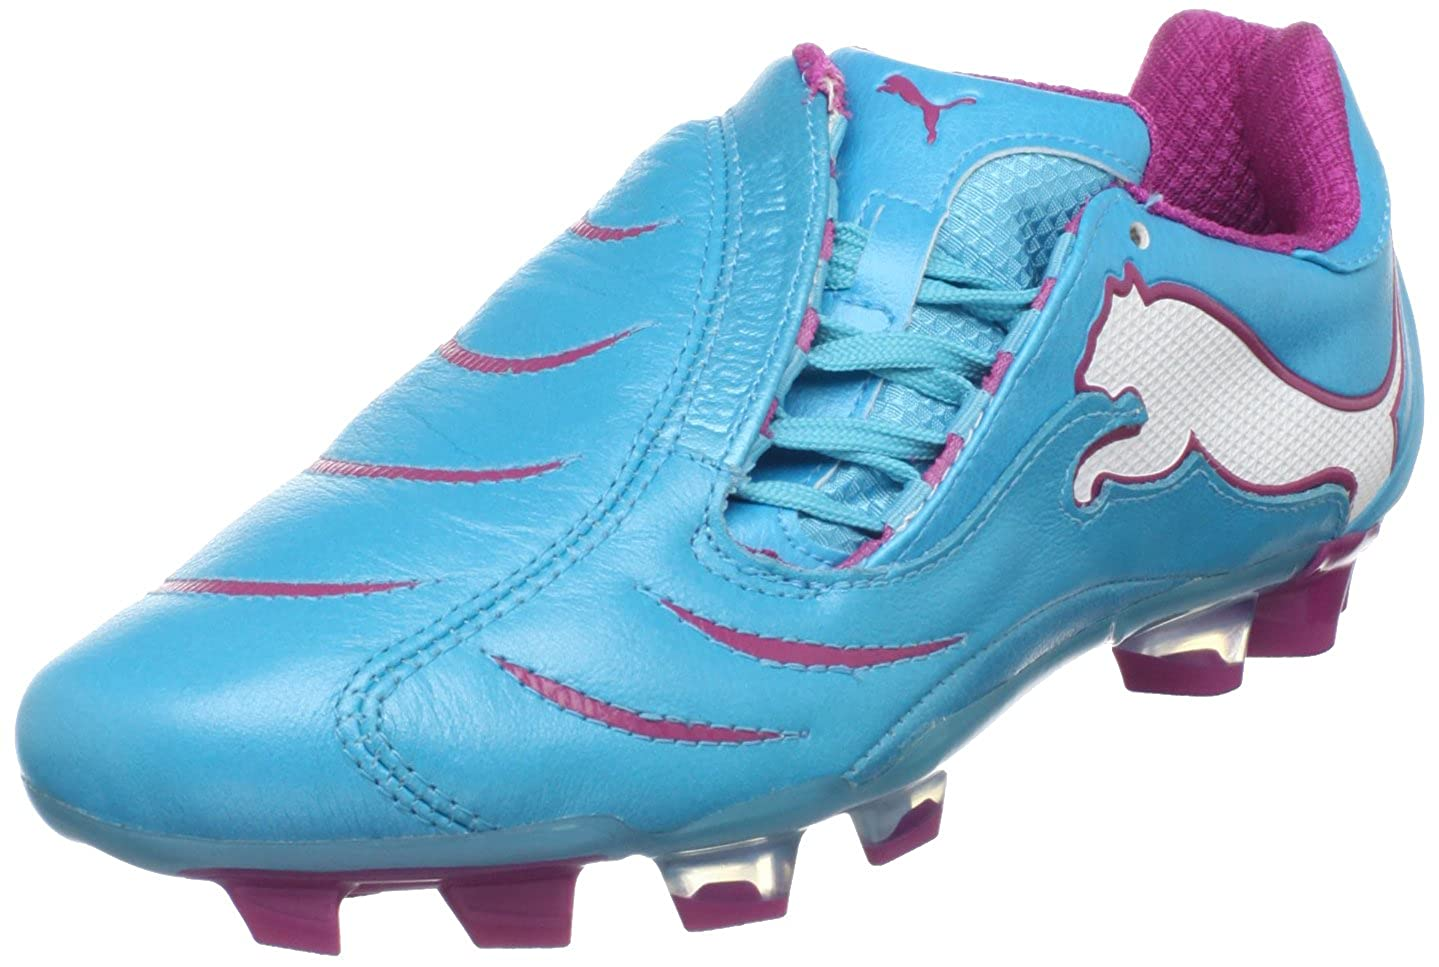 Puma Women's Powercat 2.10 FG Soccer Cleat 11.5 B US 10192108